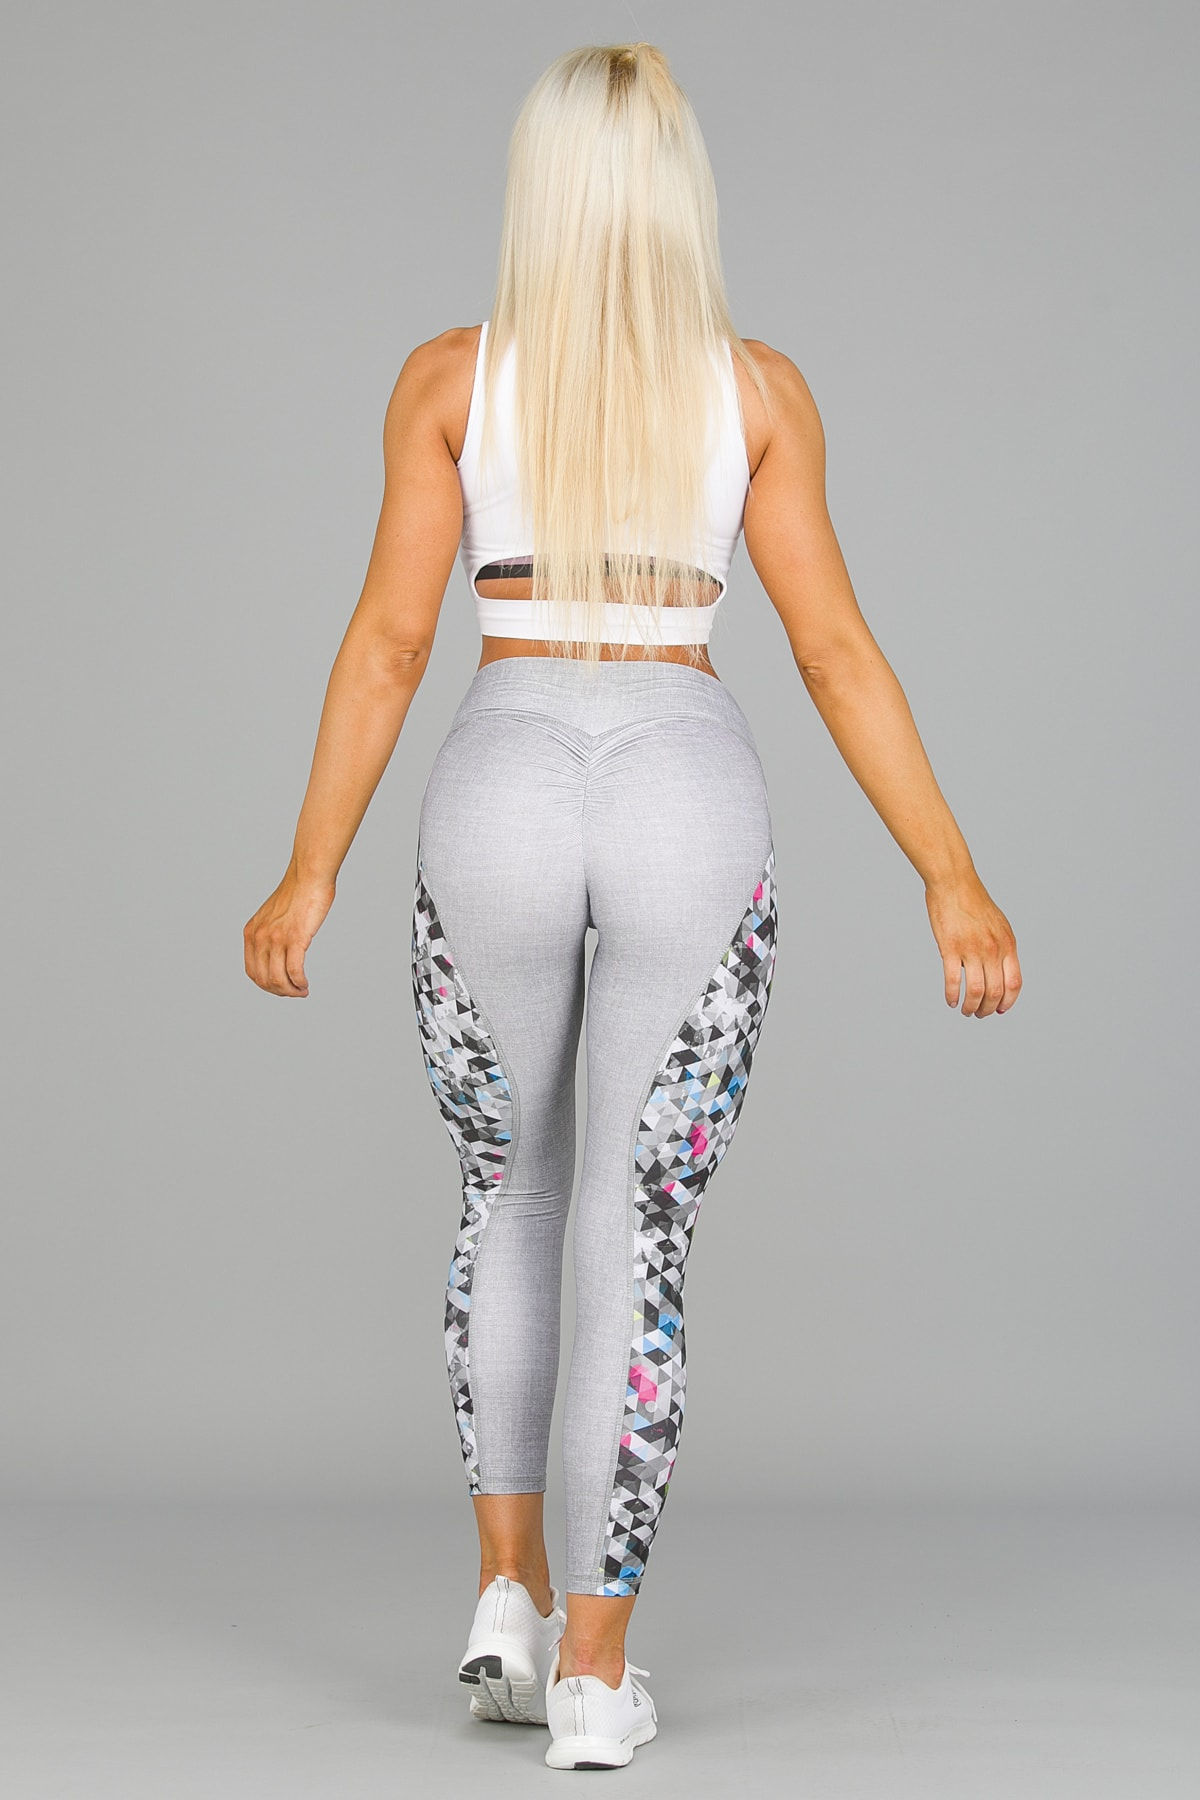 ABS2B Fitness Zero Flaw High Rise Leggings – Silver3